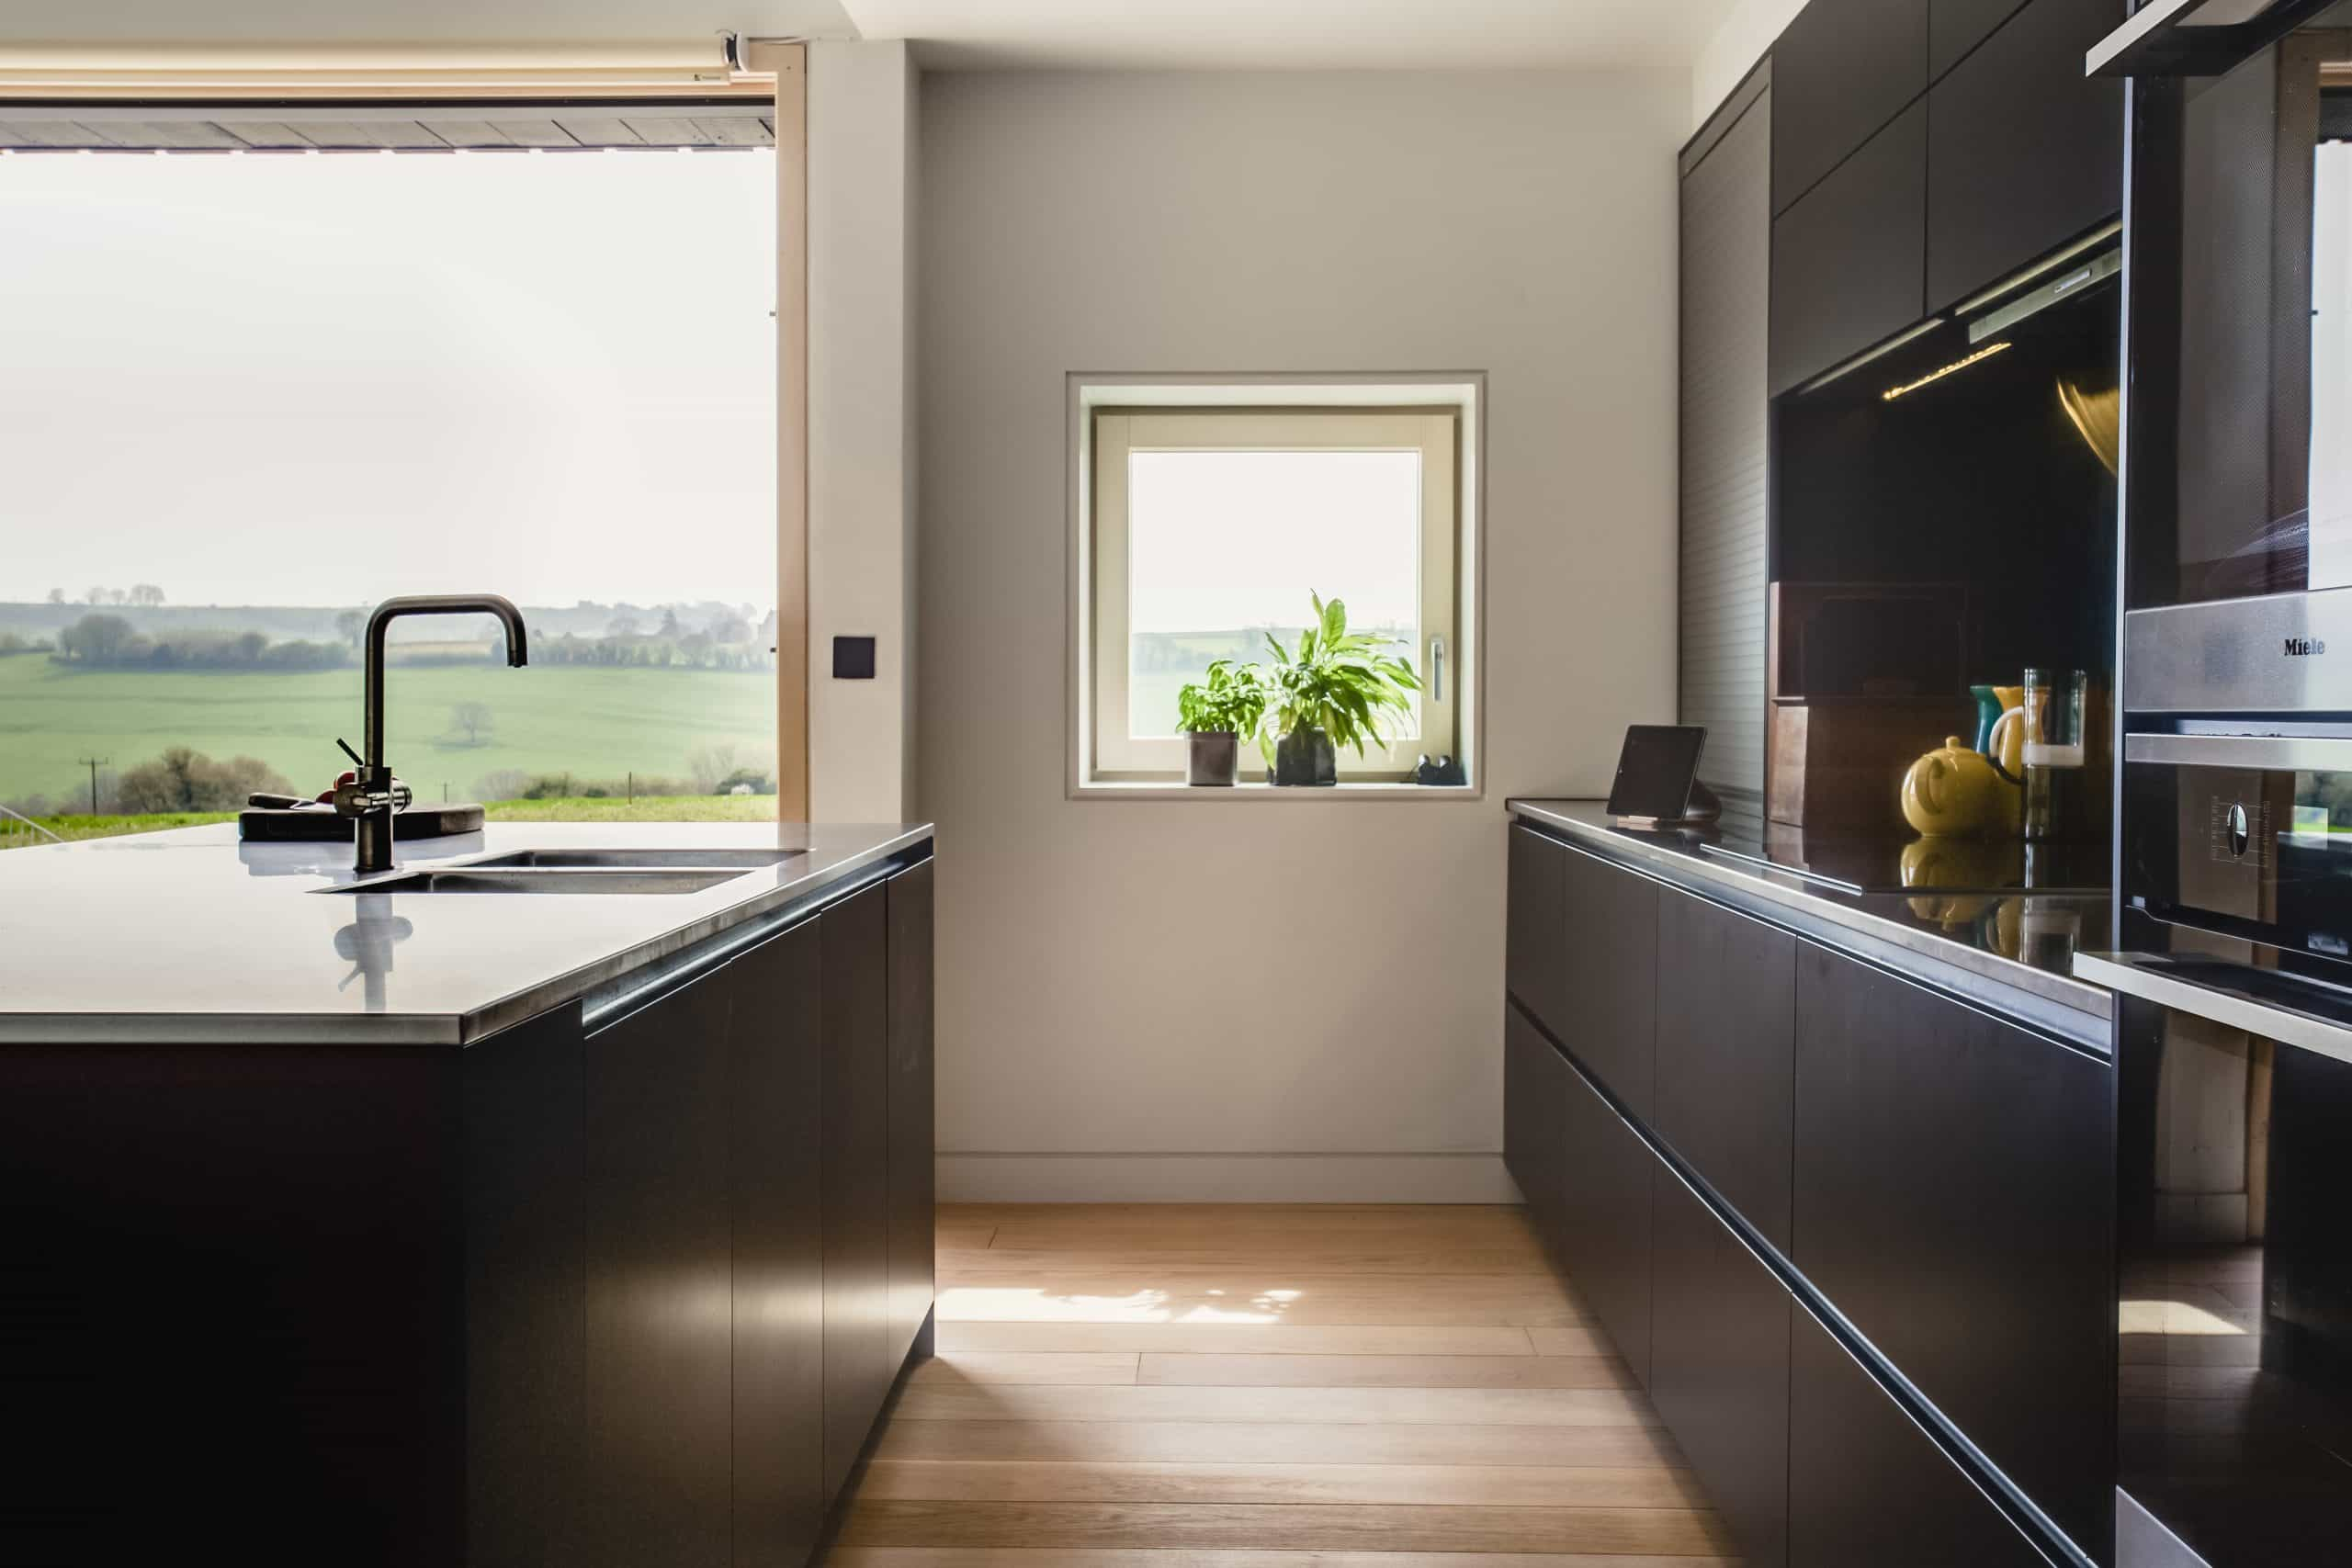 Dark bespoke joinery kitchen with bifold doors overlooking the countryside